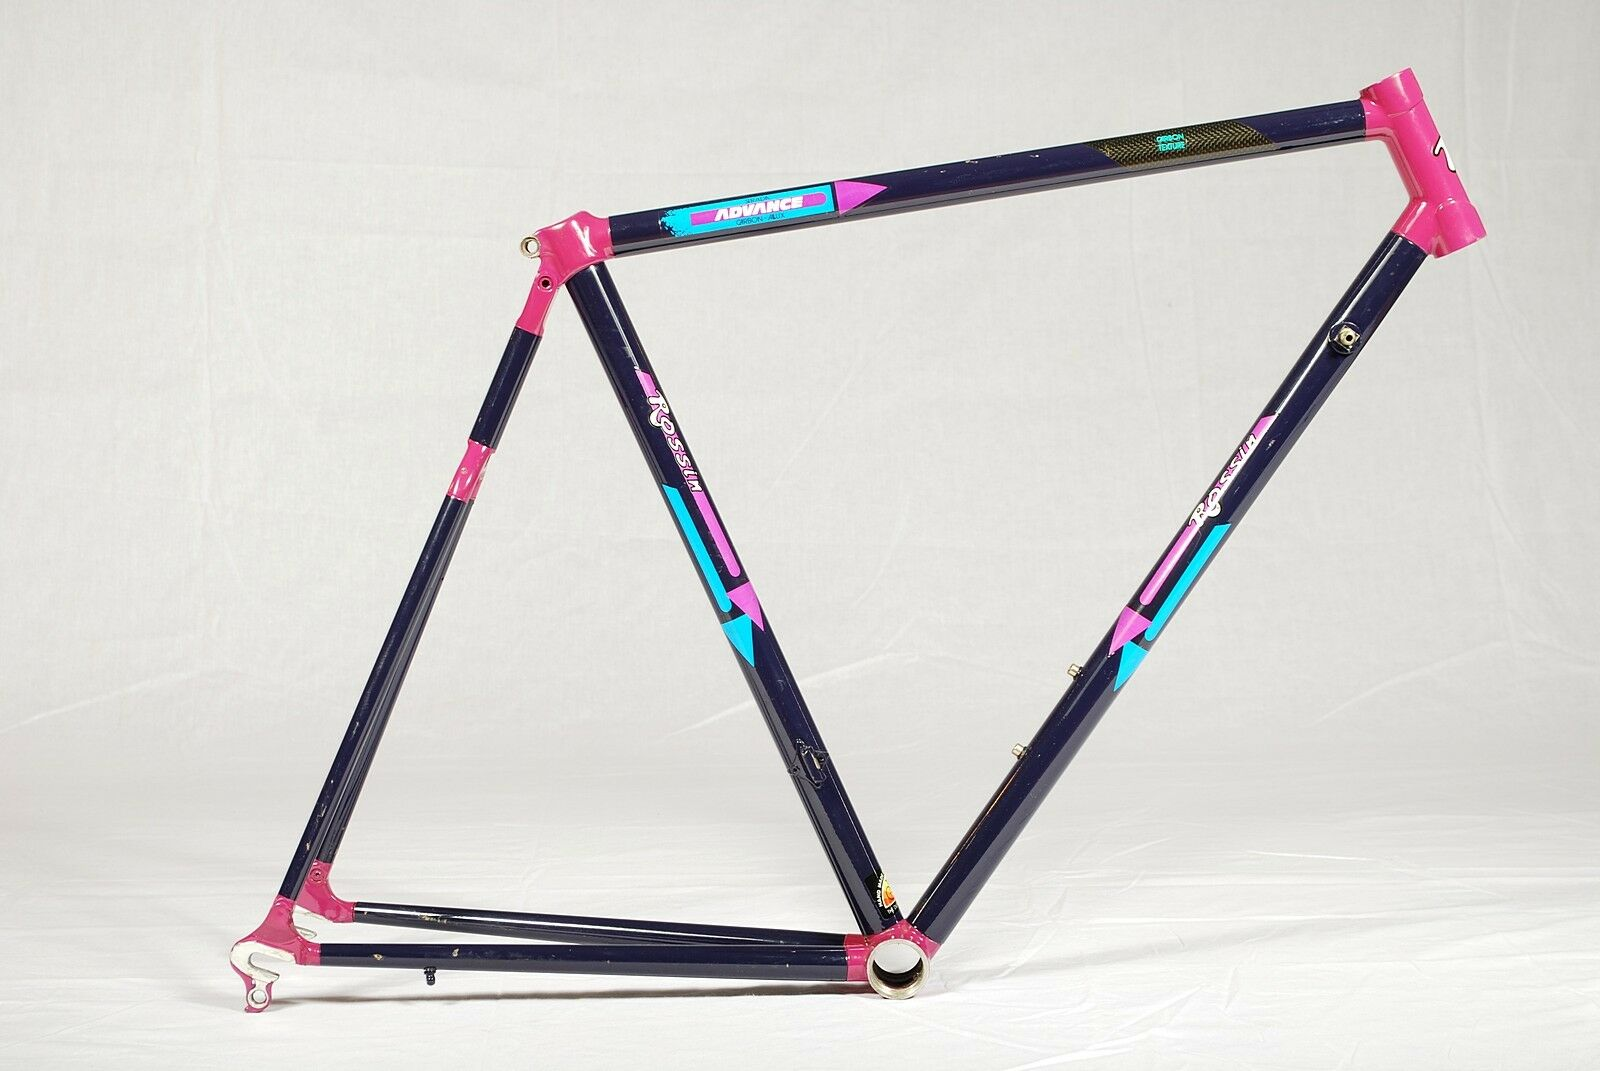 Rossin Road Bicycle Carbon Frame 54 cm Classic Bike Hard To Find